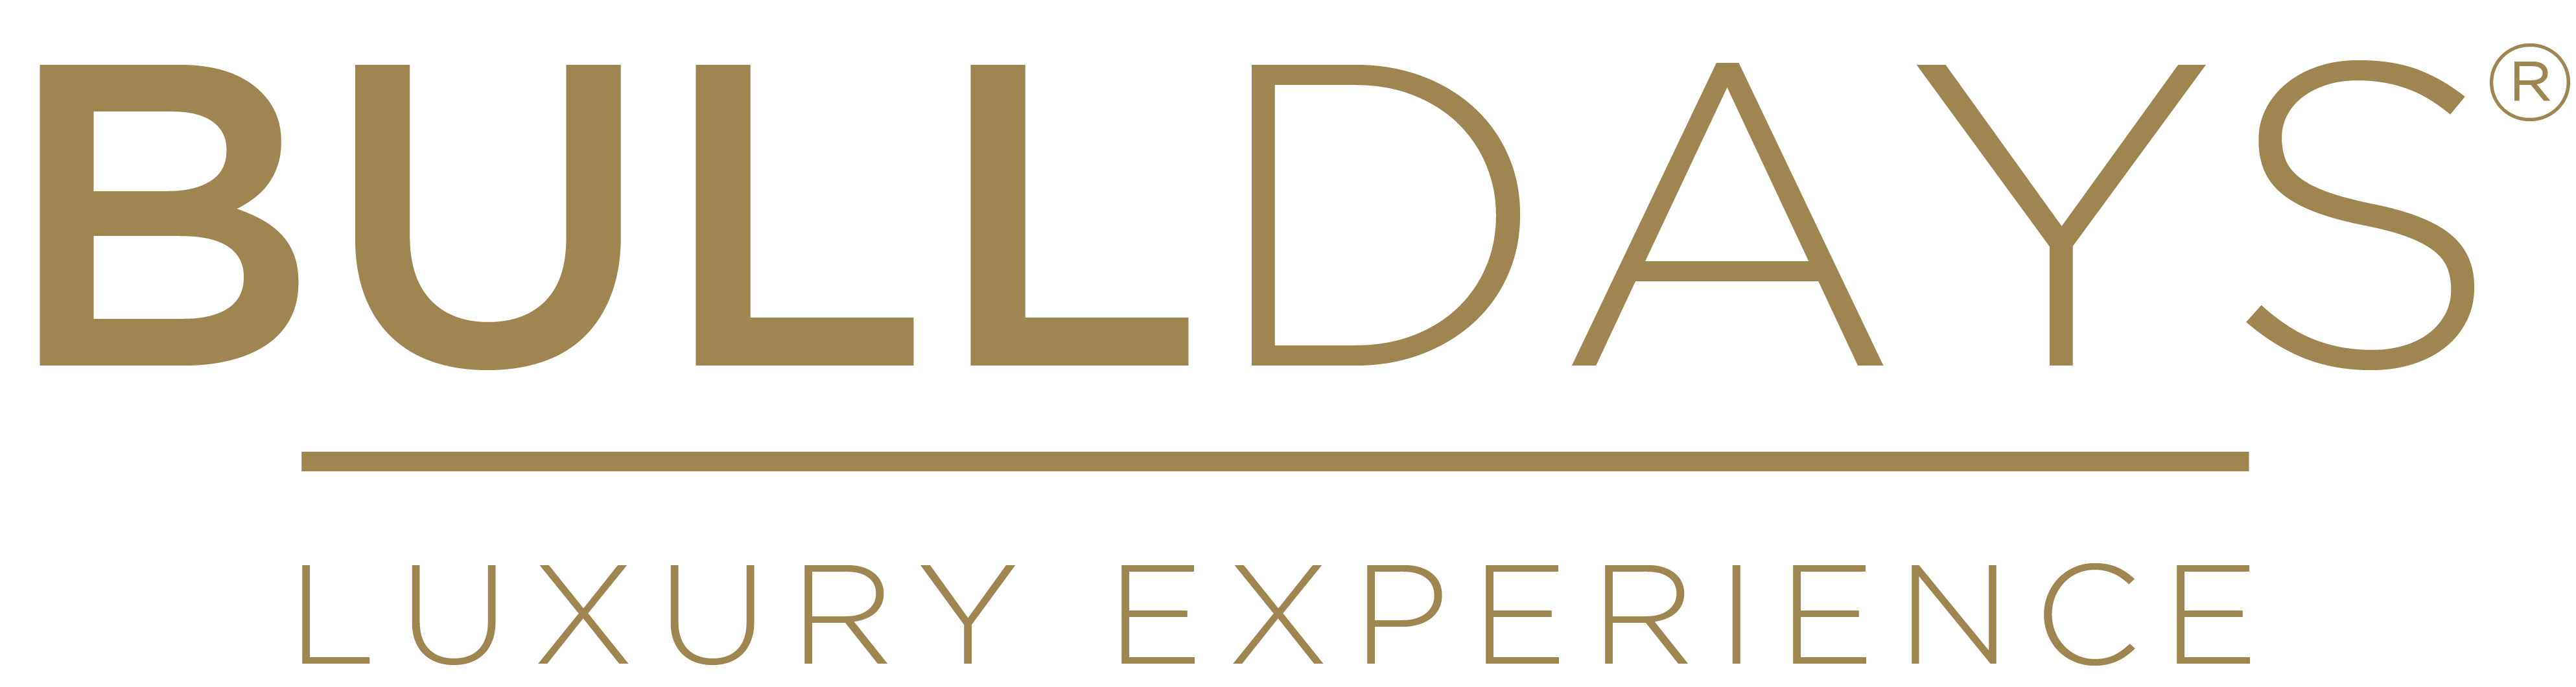 Bull Days Luxury Experience official logo